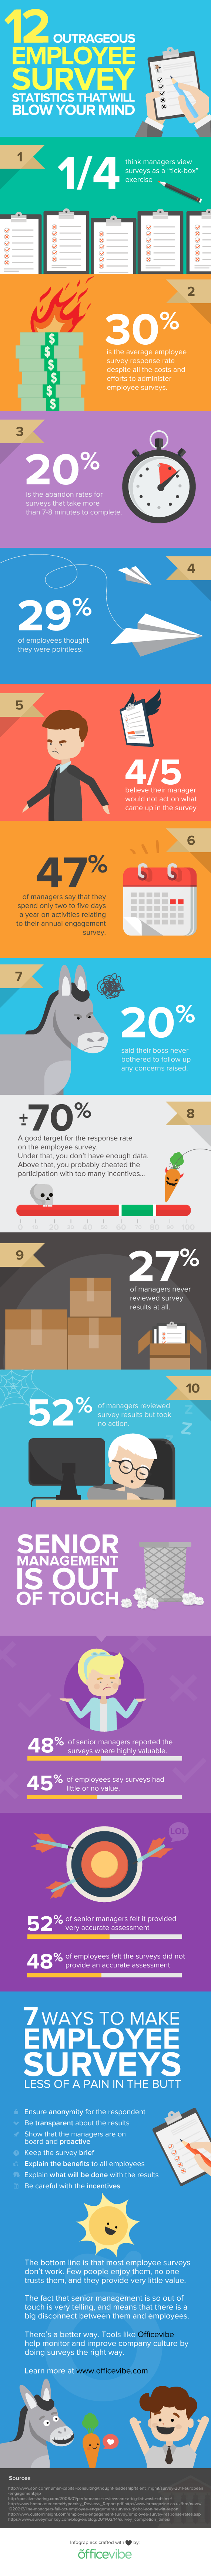 Outrageous Employee Survey Statistics That Will Blow Your Mind